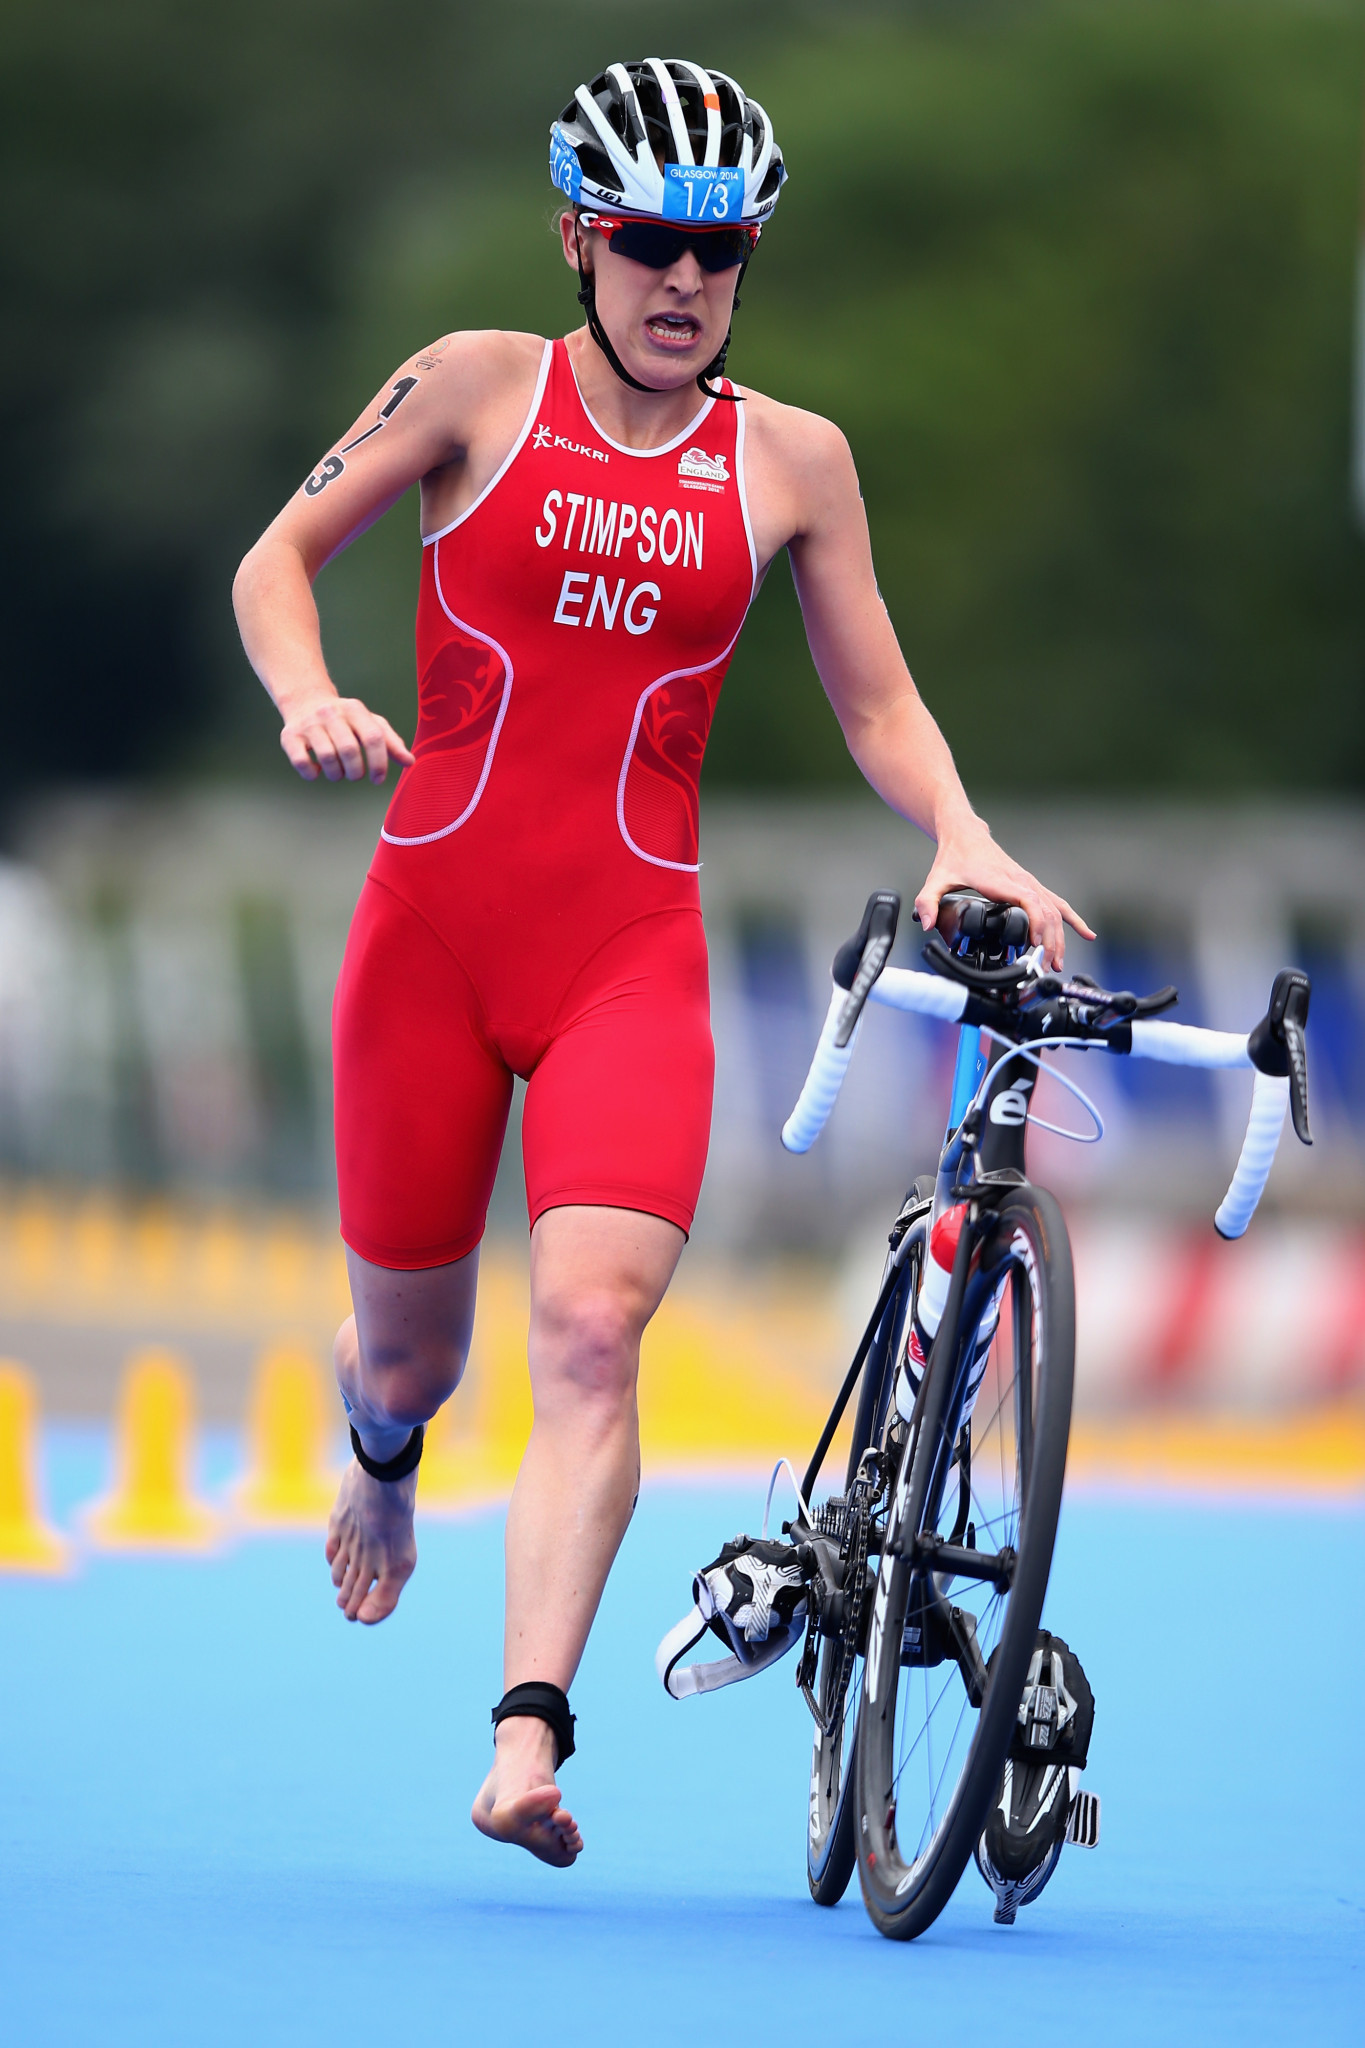 Jodie Stimpson believes Birmingham will embrace the Commonwealth Games with large crowds ©Getty Images